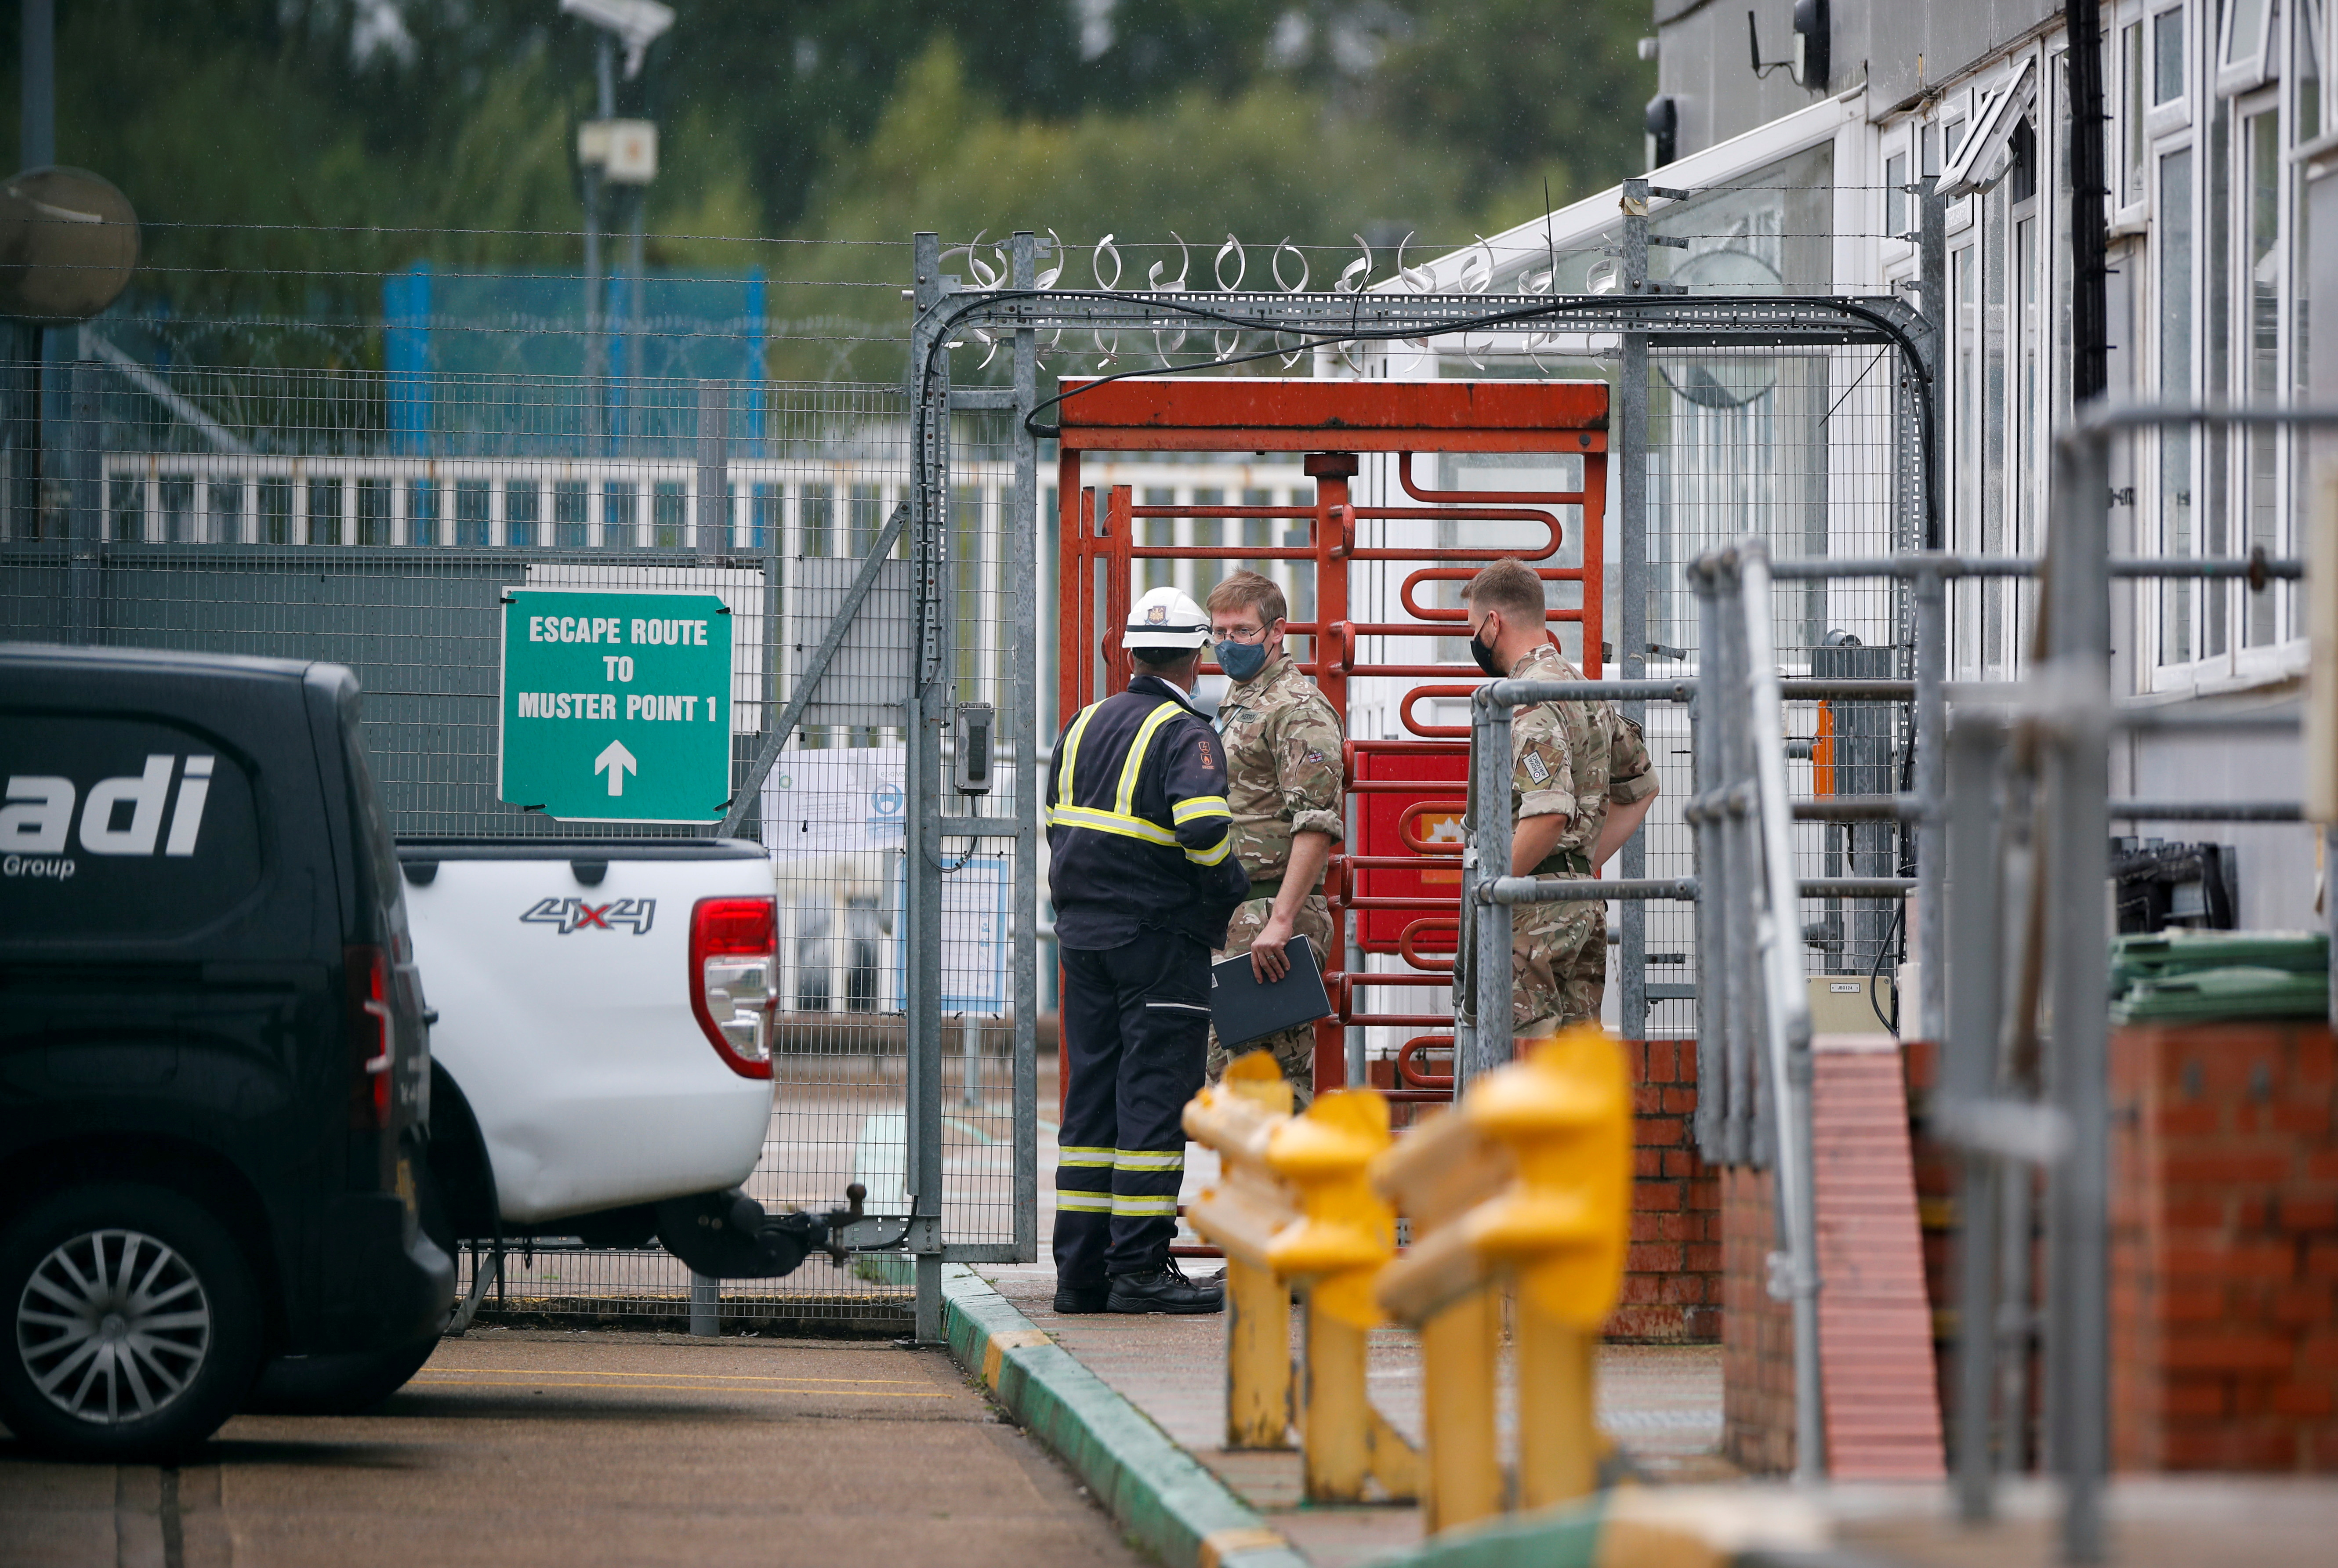 Members of the military speak to a worker at Buncefield Oil Depot in Hemel Hempstead, Britain, October 2, 2021. REUTERS/Paul Childs/File Photo